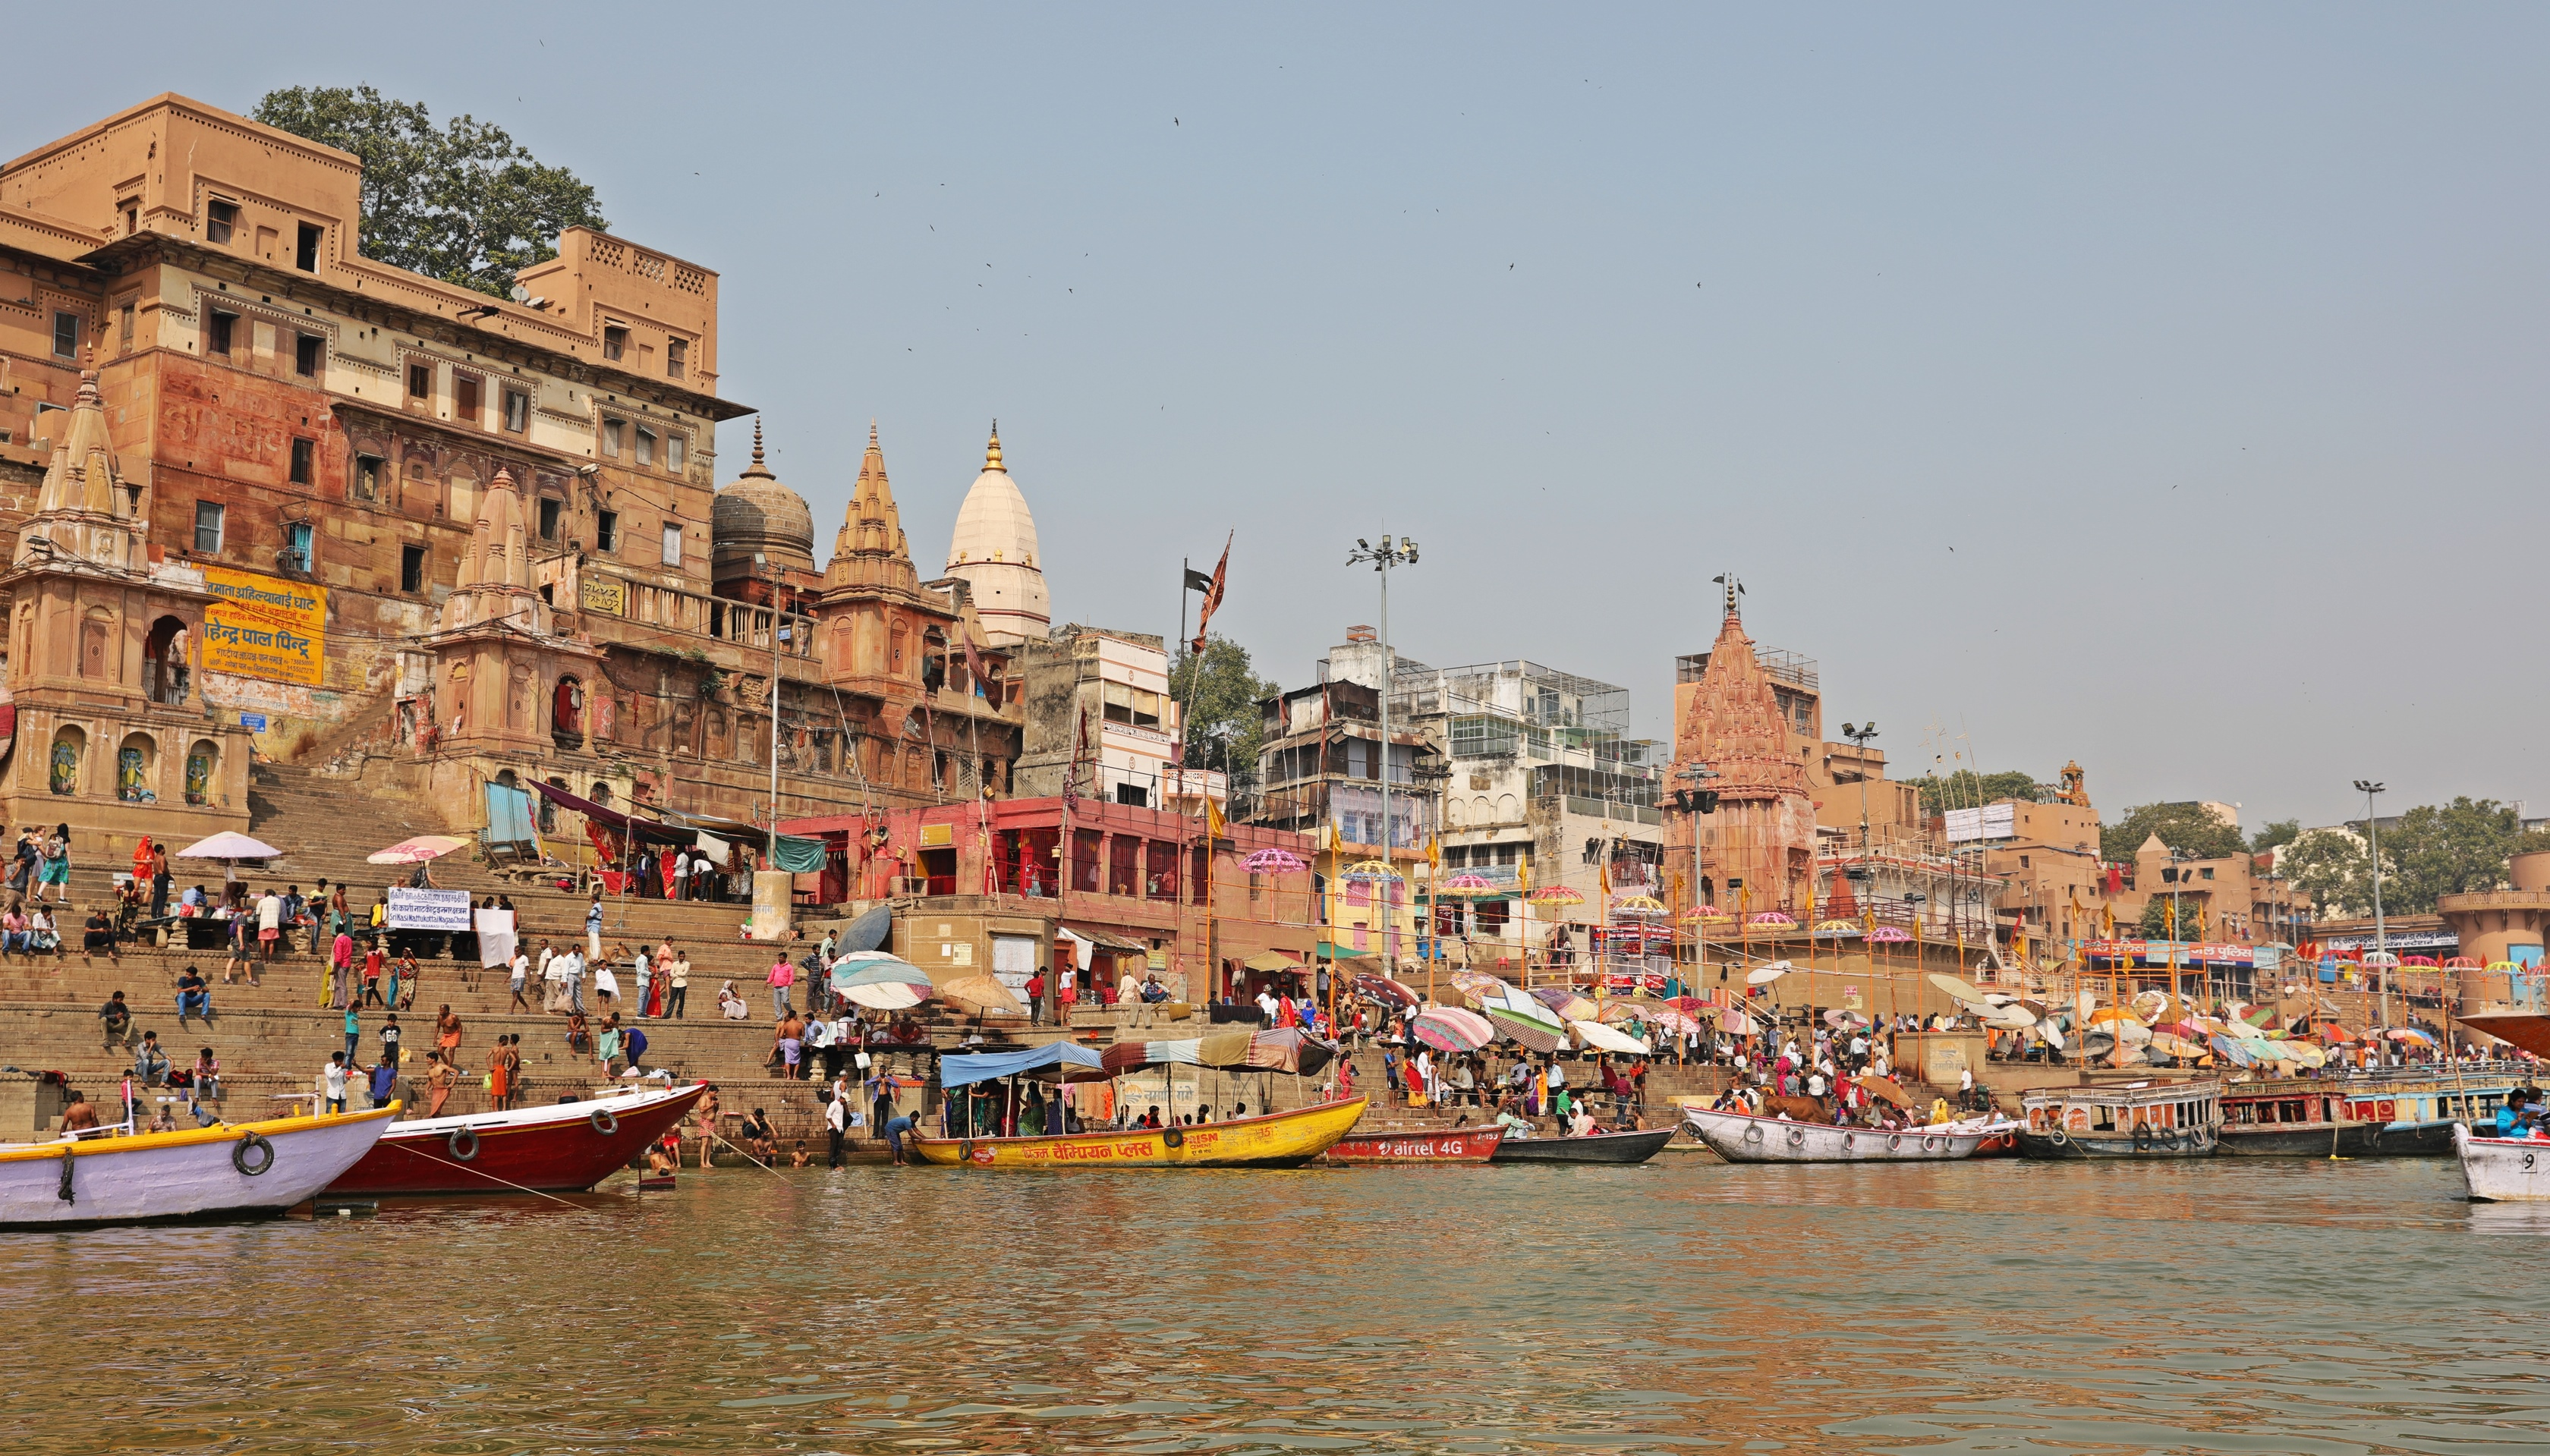 Ghats on the Ganges, Varanasi